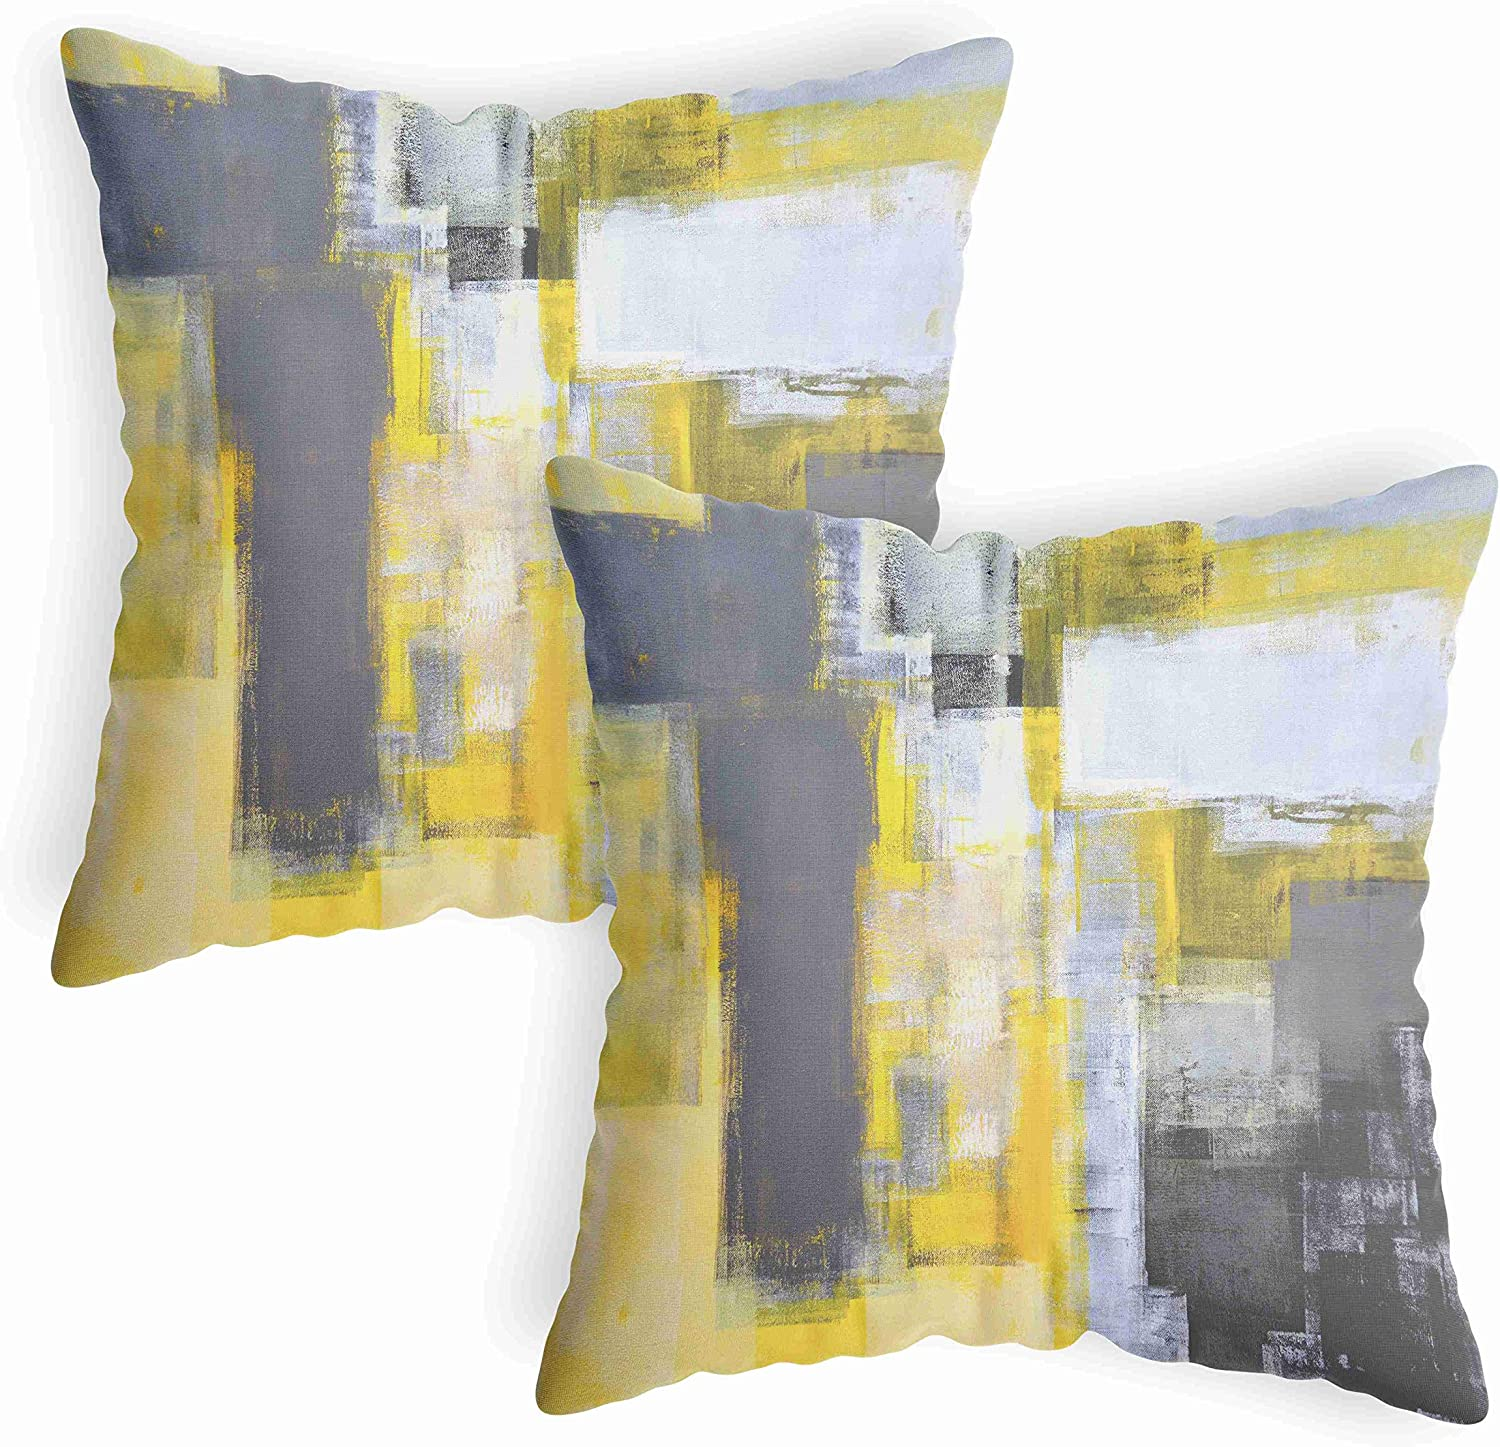 Sale special price LucaSng Abstract At the price of surprise Yellow Throw Pillow Pill Gray Covers Decorative